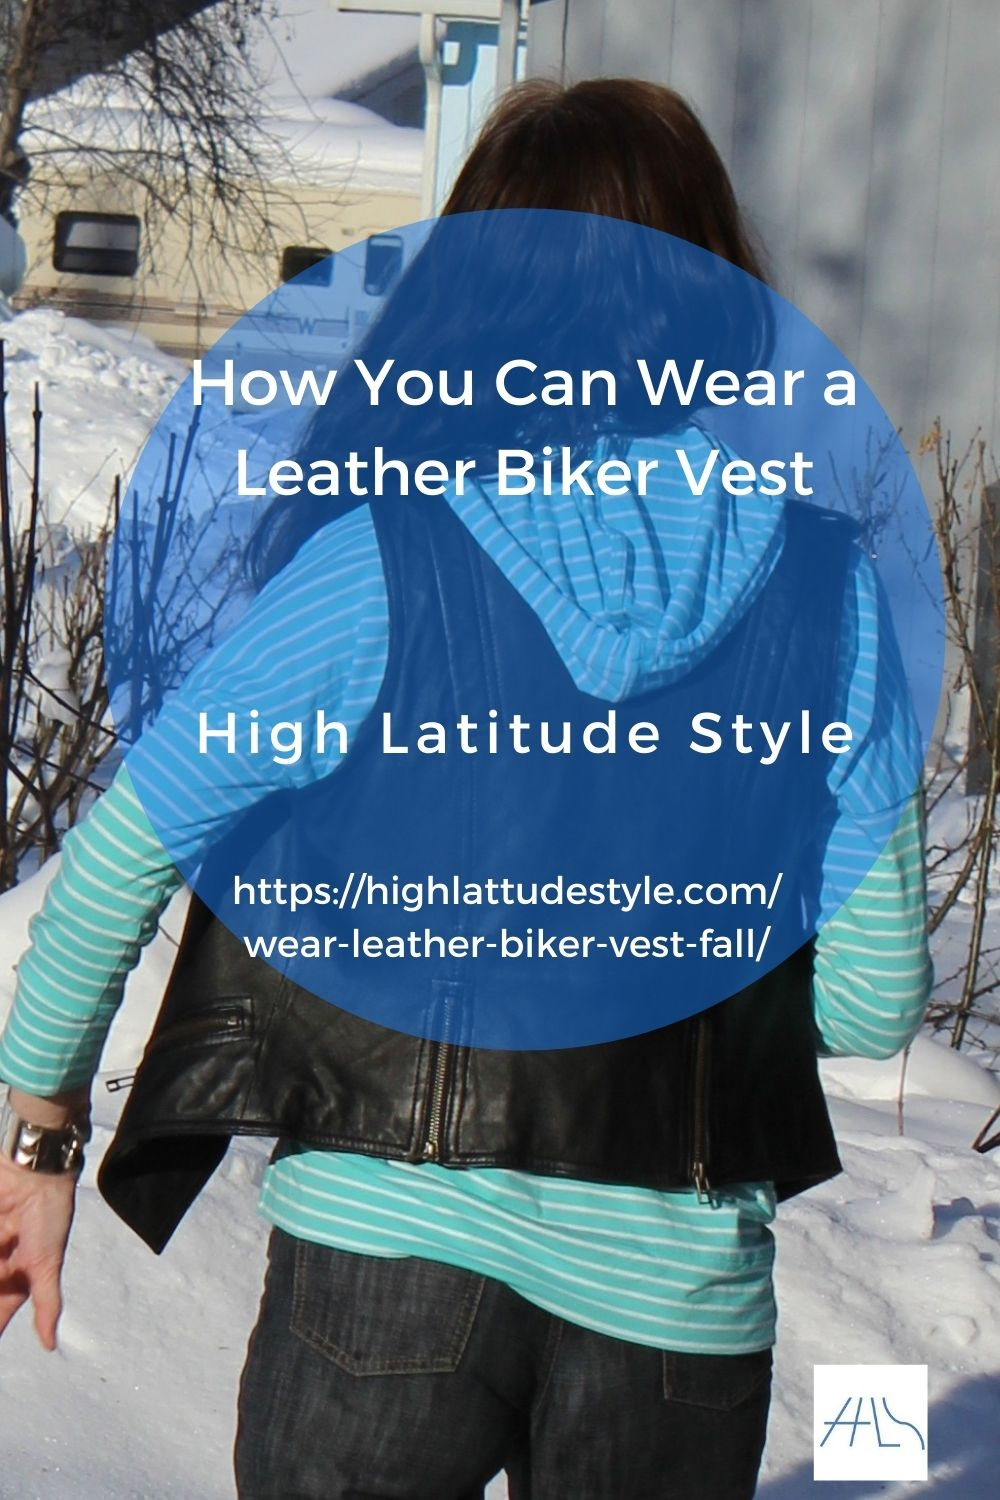 How You Can Wear a Leather Biker Vest